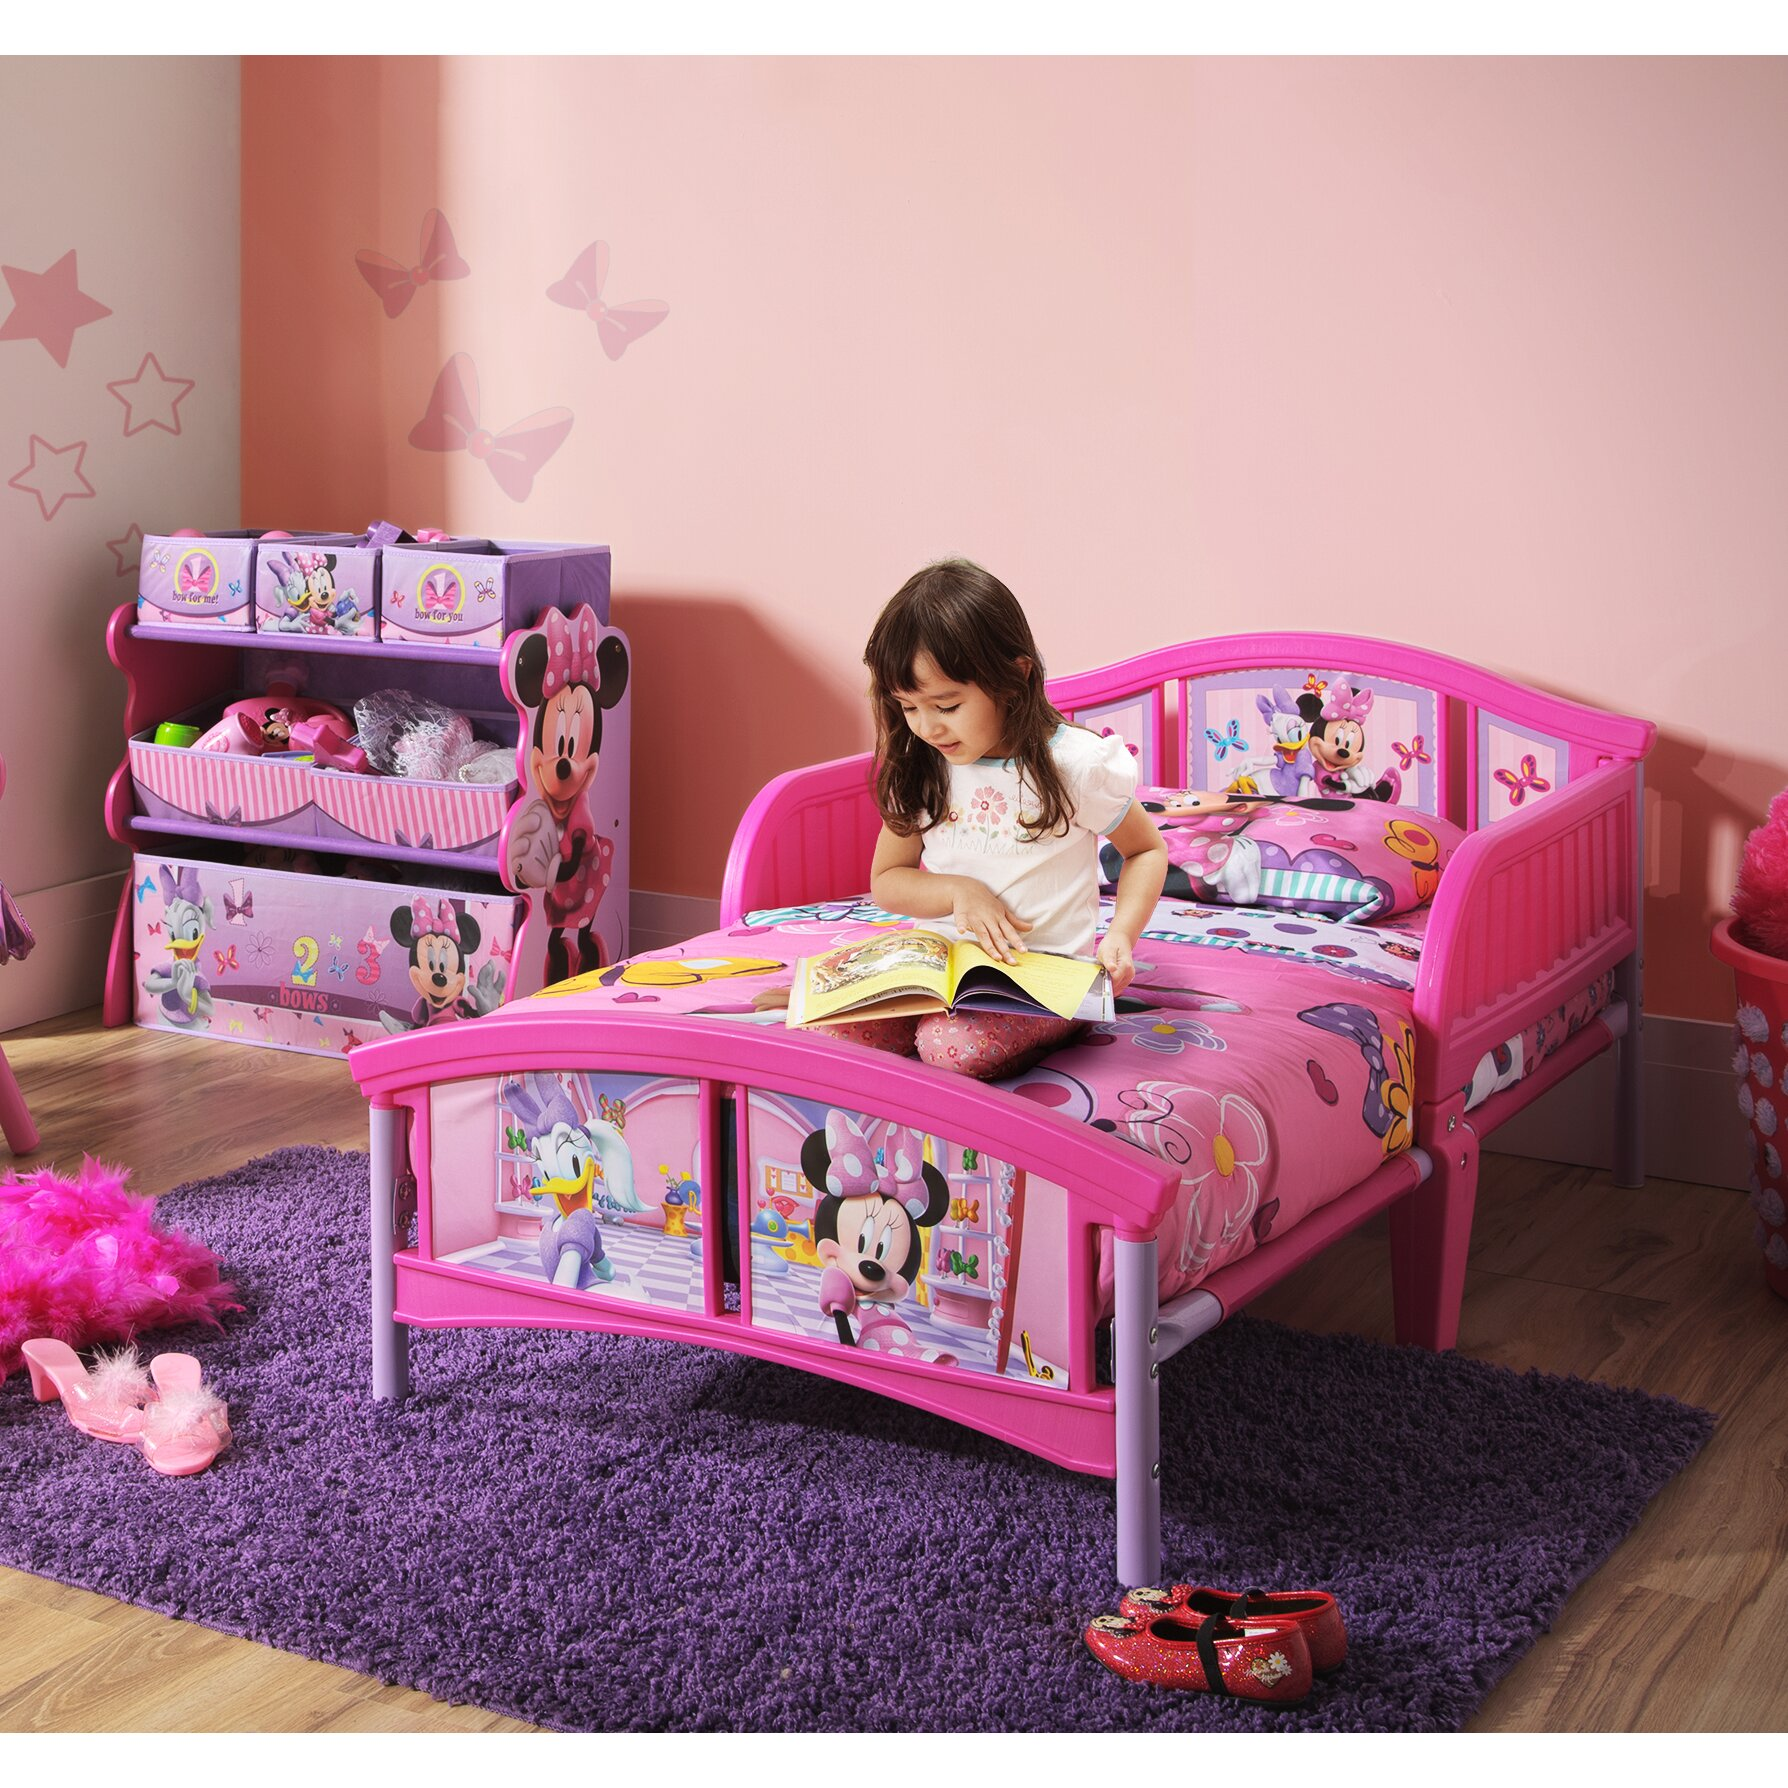 Minnie Mouse Bedroom Decor Minnie Mouse Bedroom Furniture Minnie Mouse Bedroom Furniture